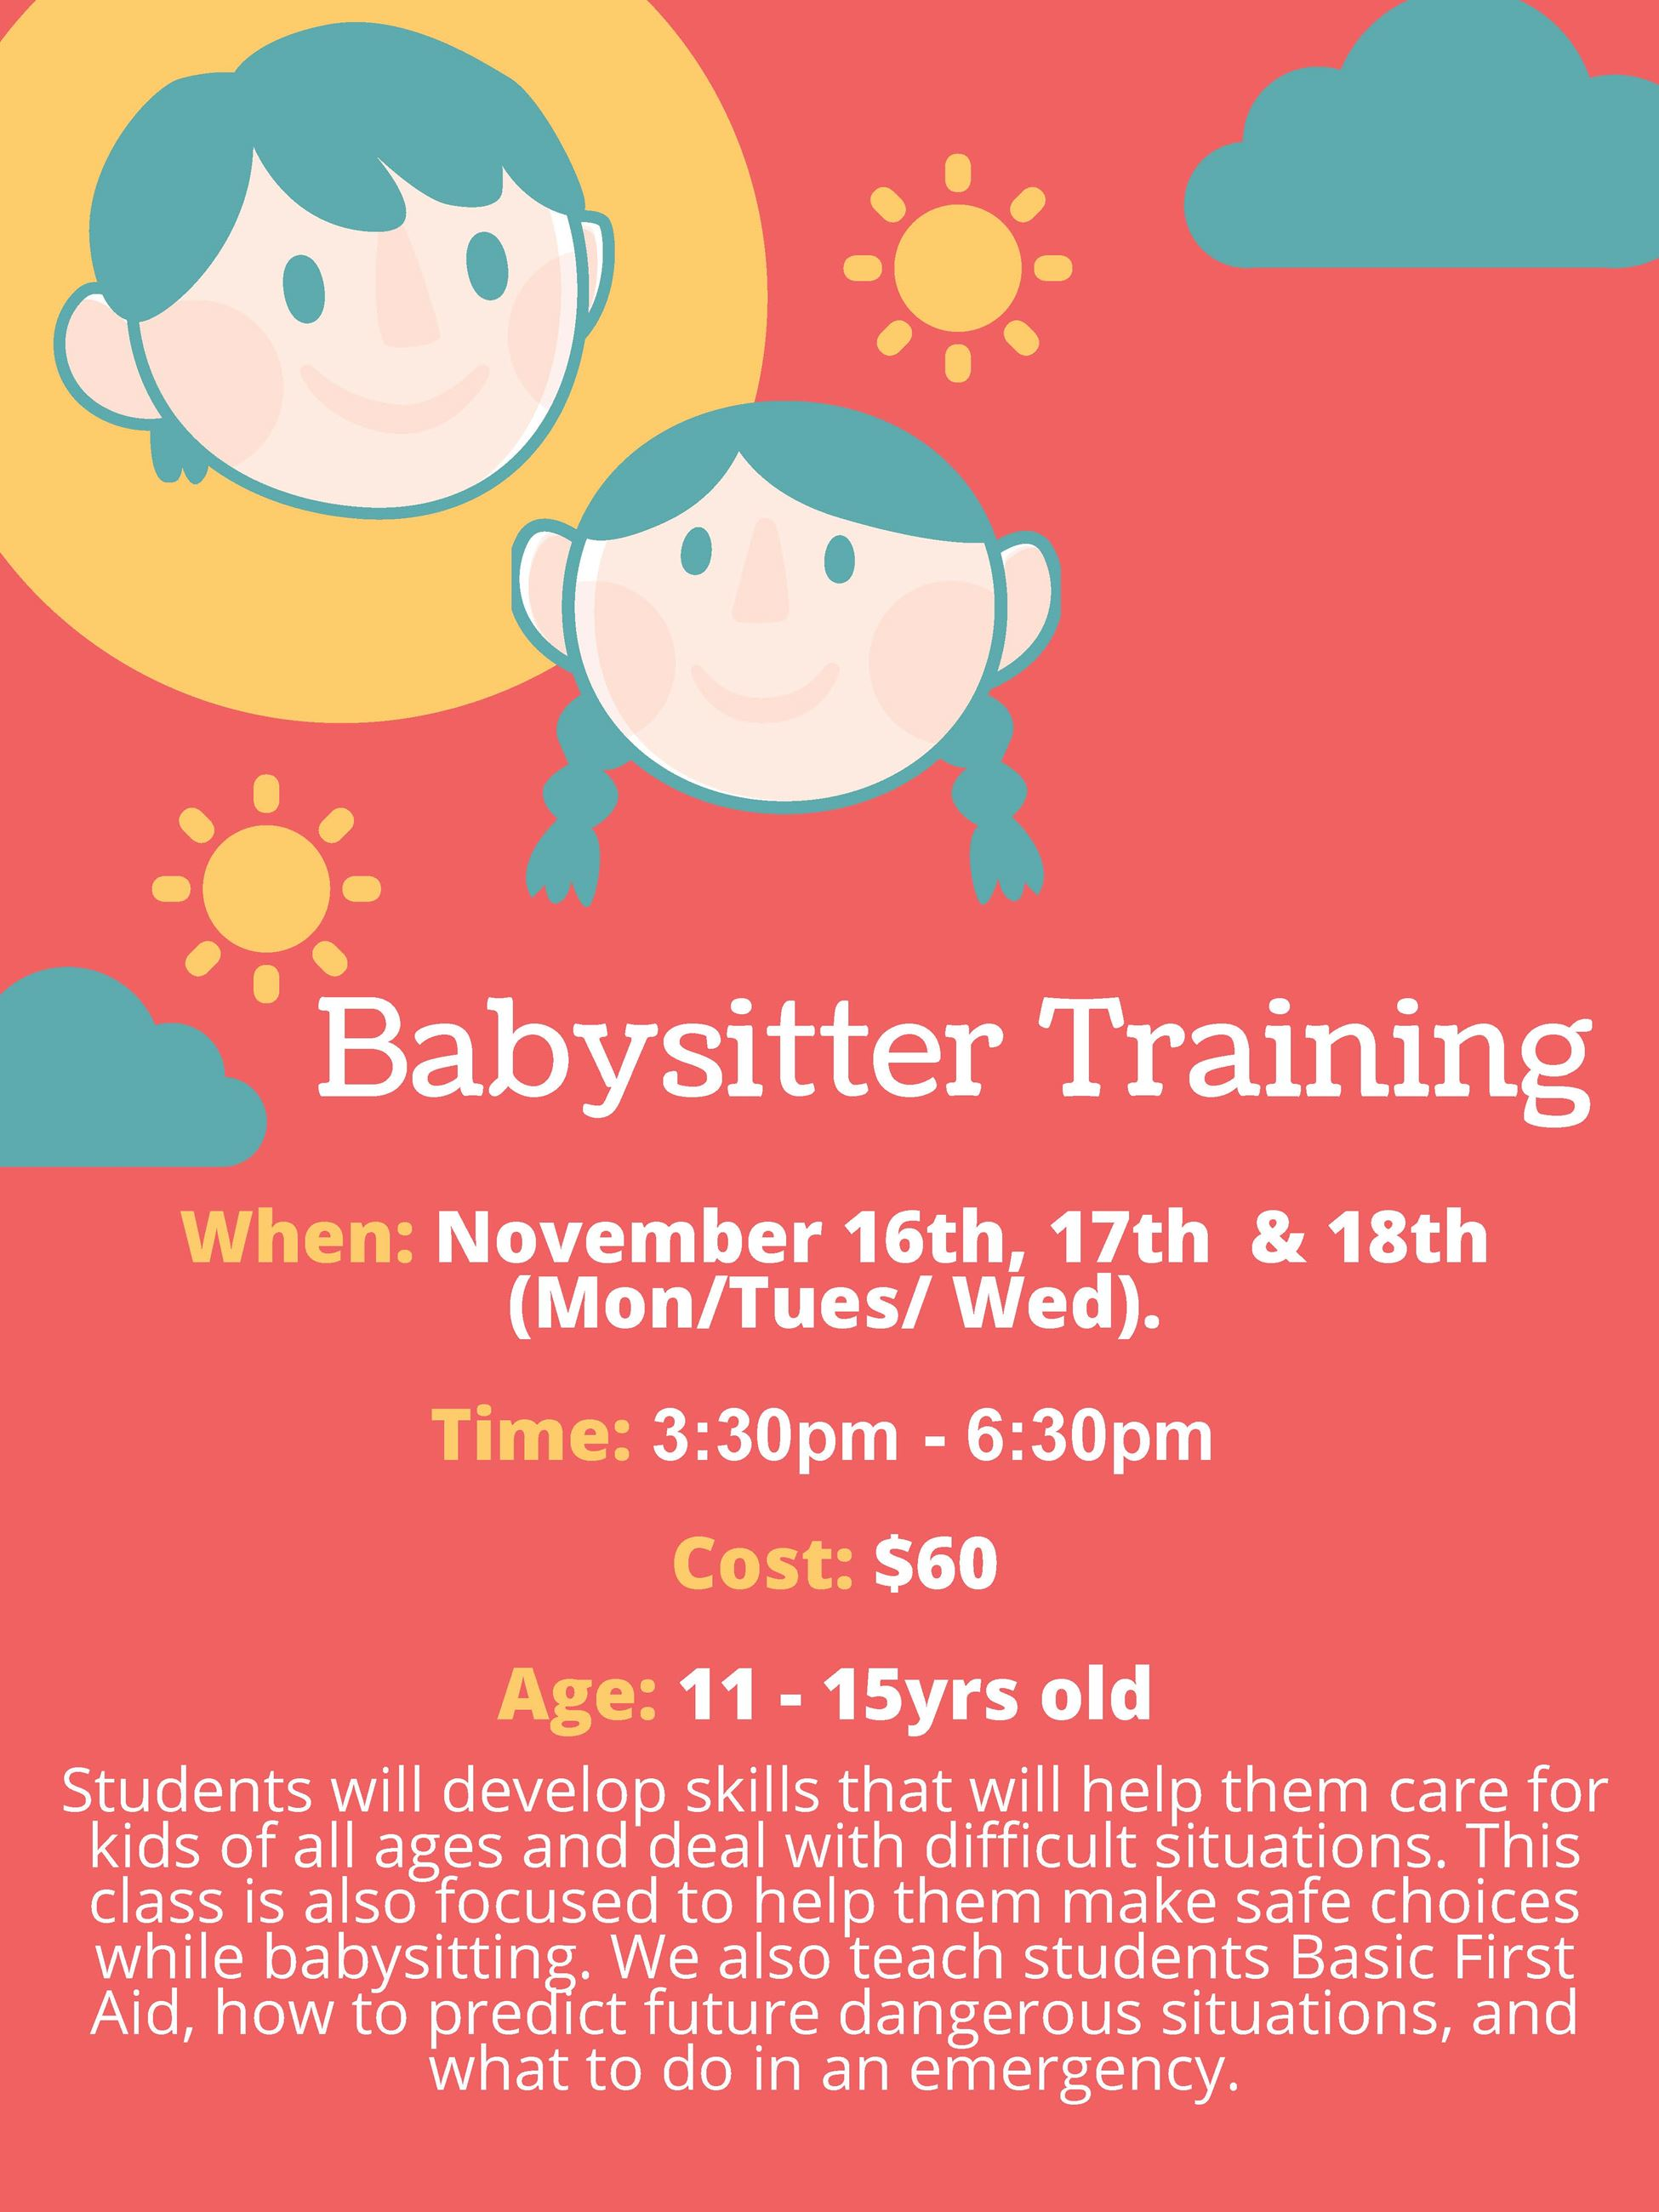 Babysitter Traning Course